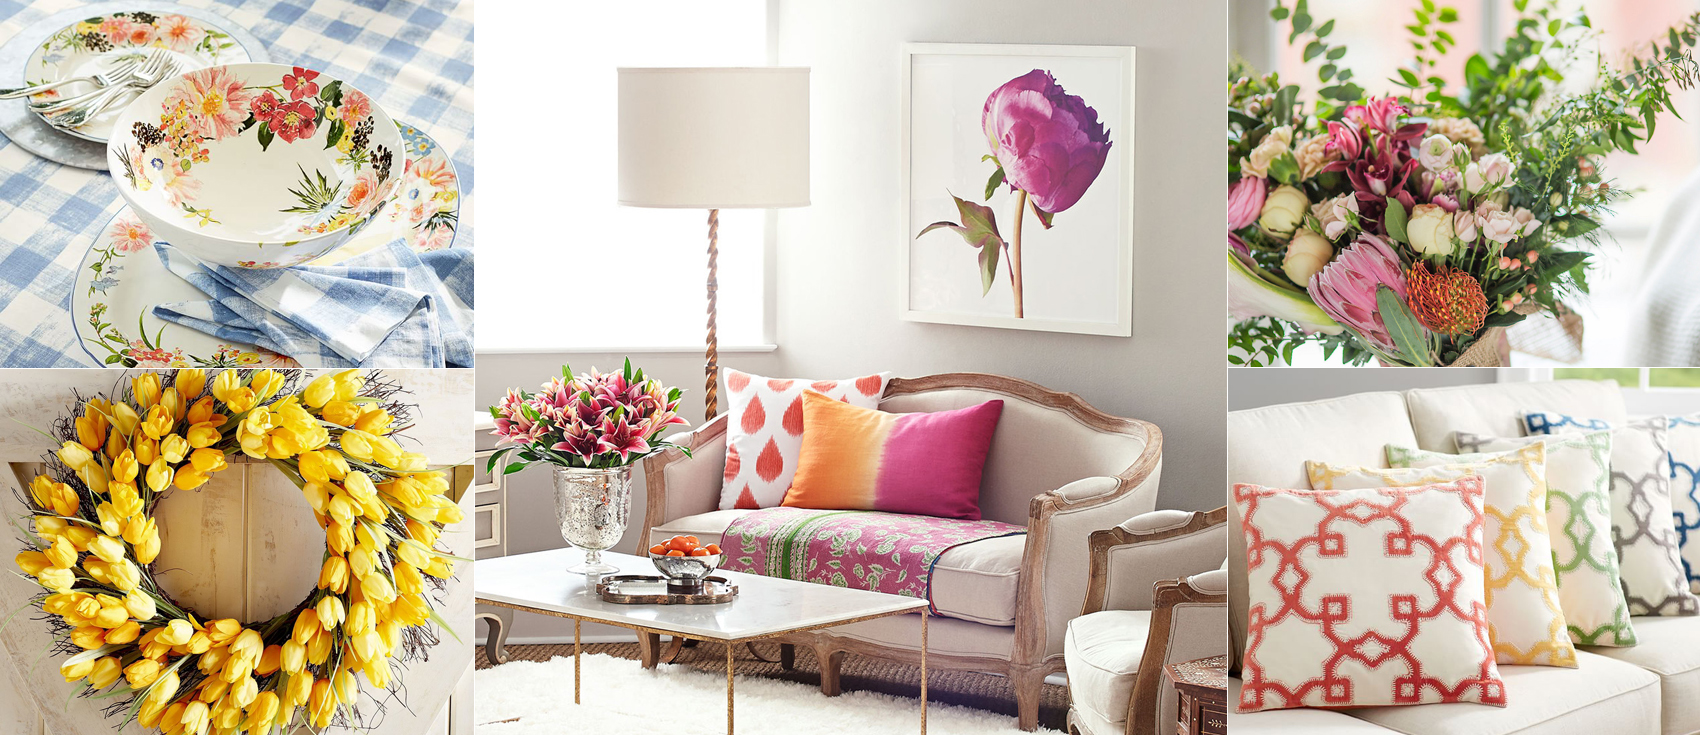 Spring Decor | Spring Decorating Tips & Ideas | Buyer Select